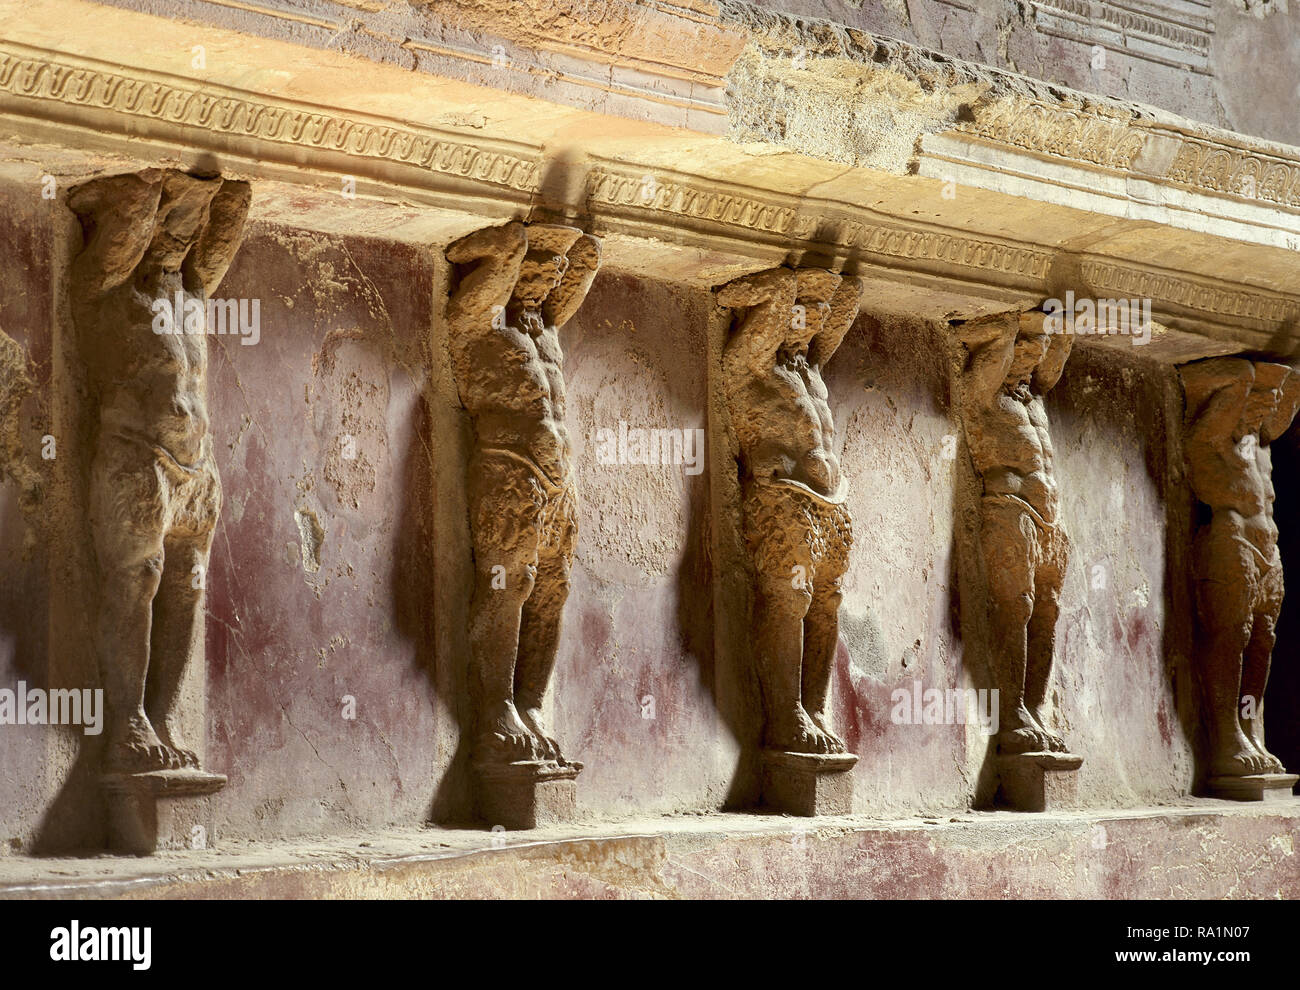 Italy. Pompeii. The Forum thermal baths. Public baths, edificated immediately after the founding of the colony (after 80 BC). They were subdivided into men's and women's section. Tepidarium (warm room). Detail of Telamons. Inside. Campania. - Stock Image